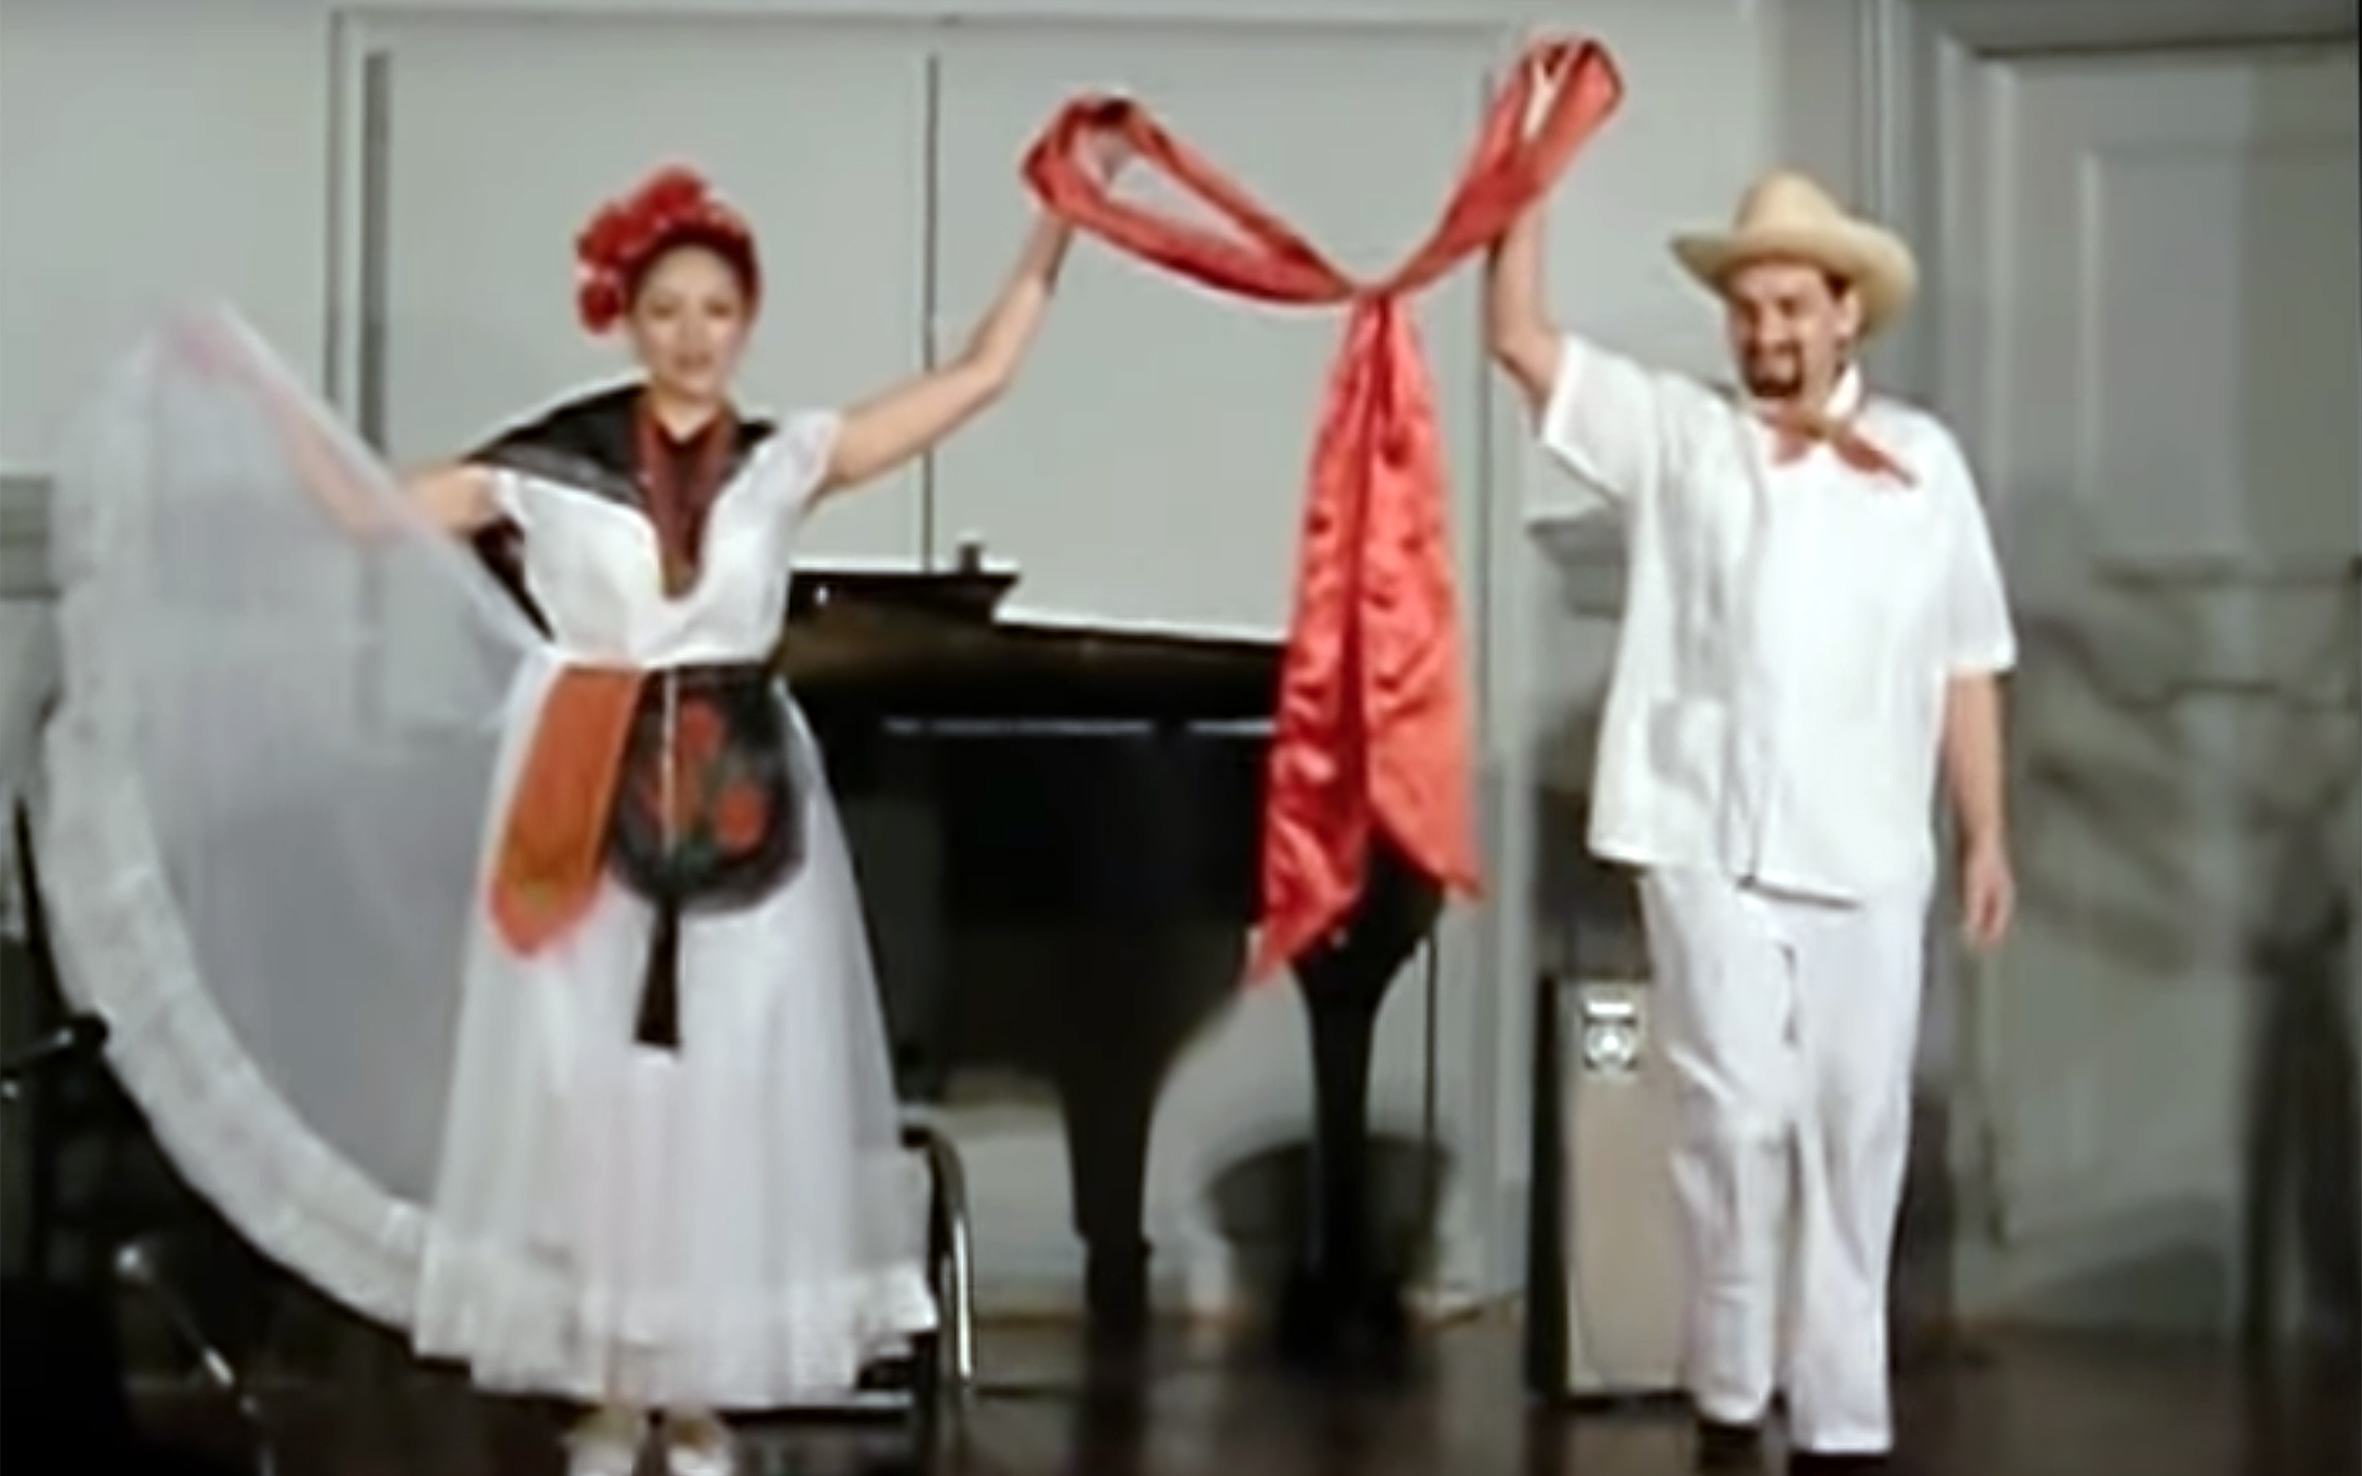 521.LA Bamba / Mexico / Latin America - LA Bamba is a popular song of Mexican origin that is well known across the Latin America. It is usually danced in family reunions.